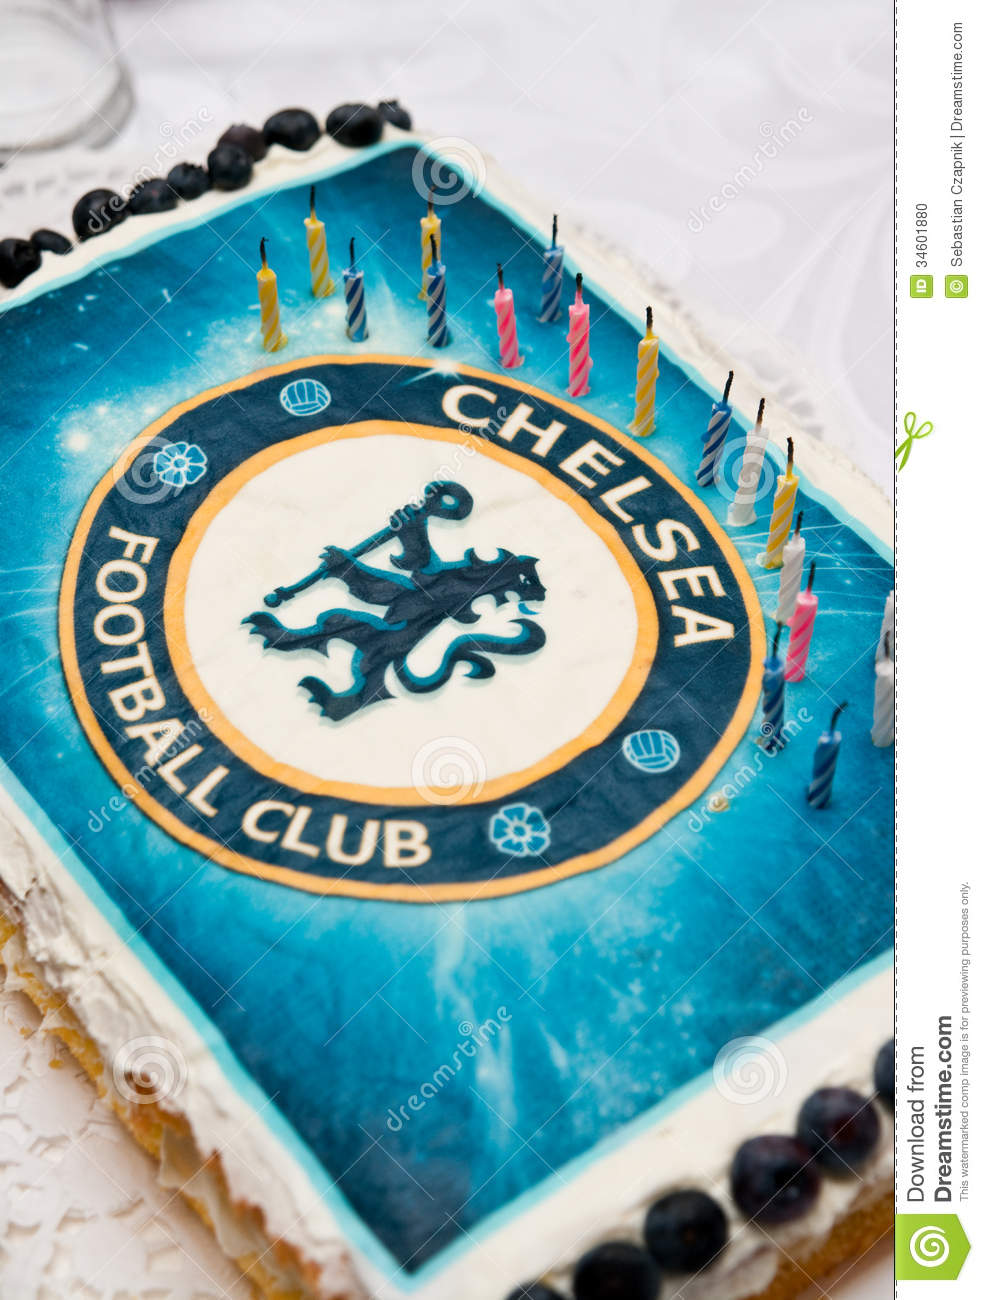 Club  Chocolate Birthday Cake